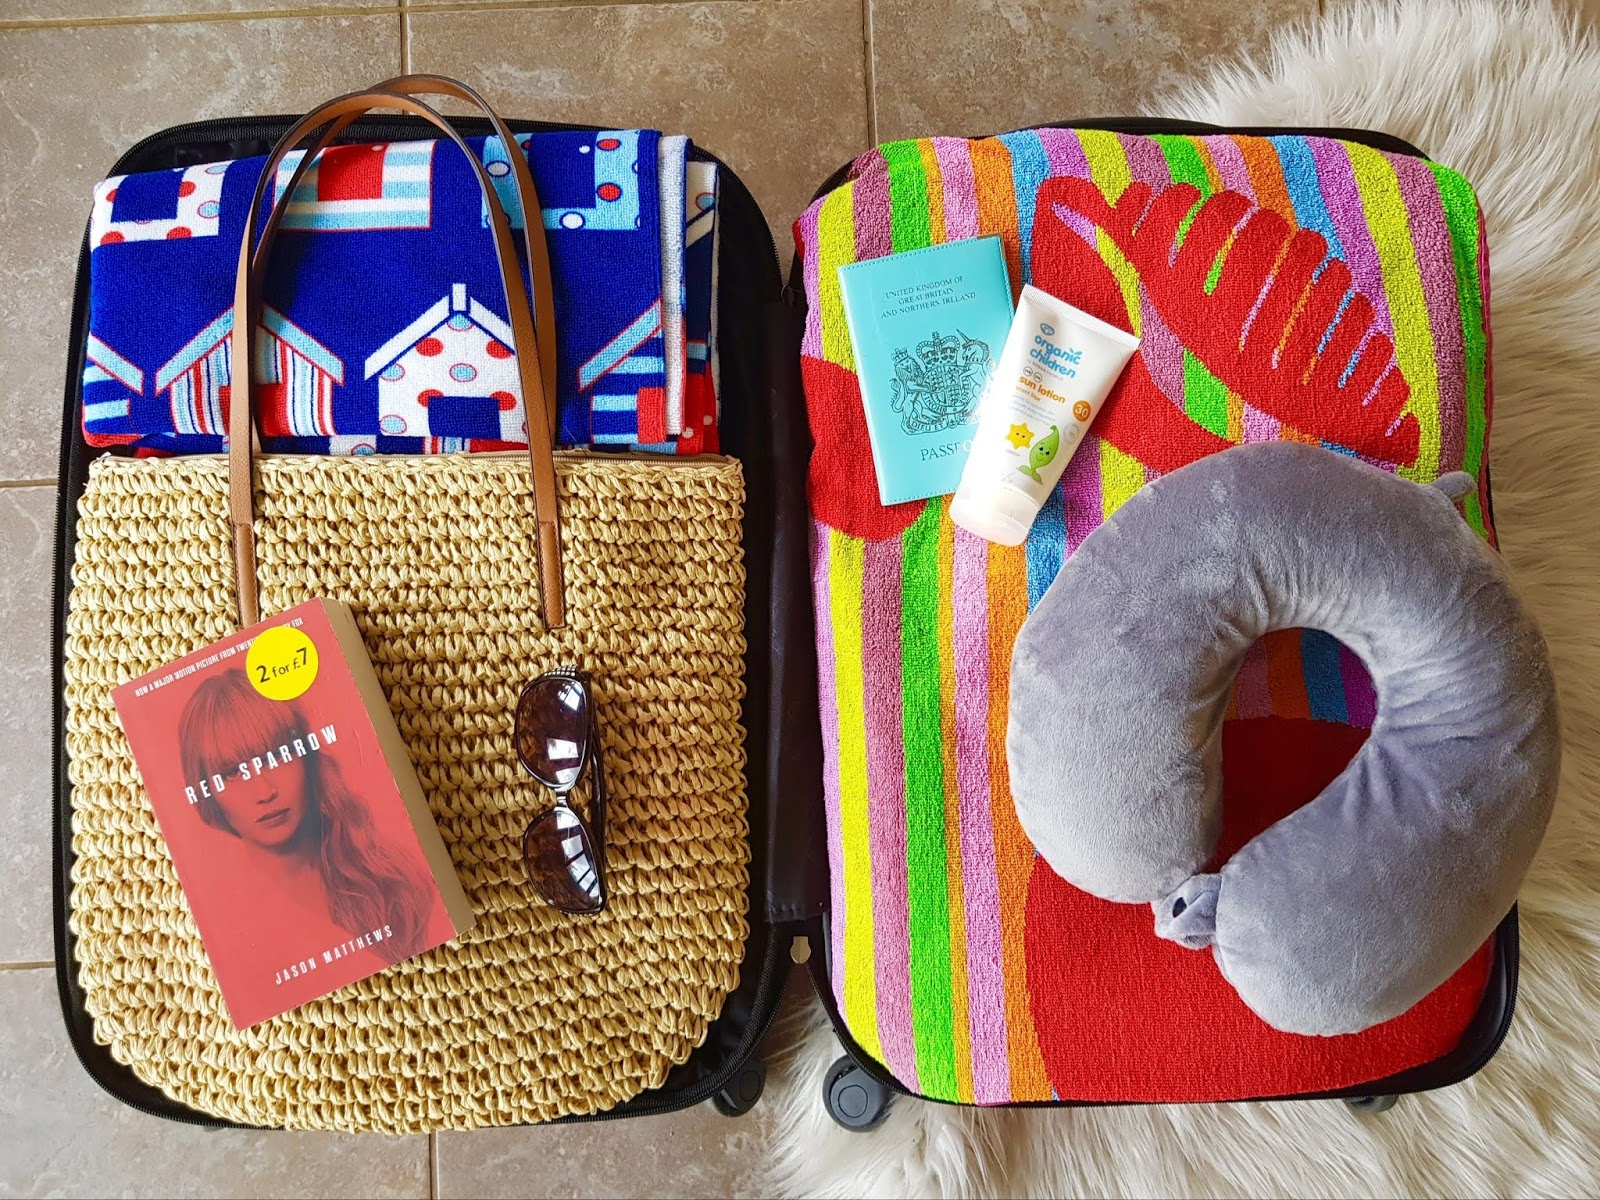 travel holiday packing guide checklist essentials summer